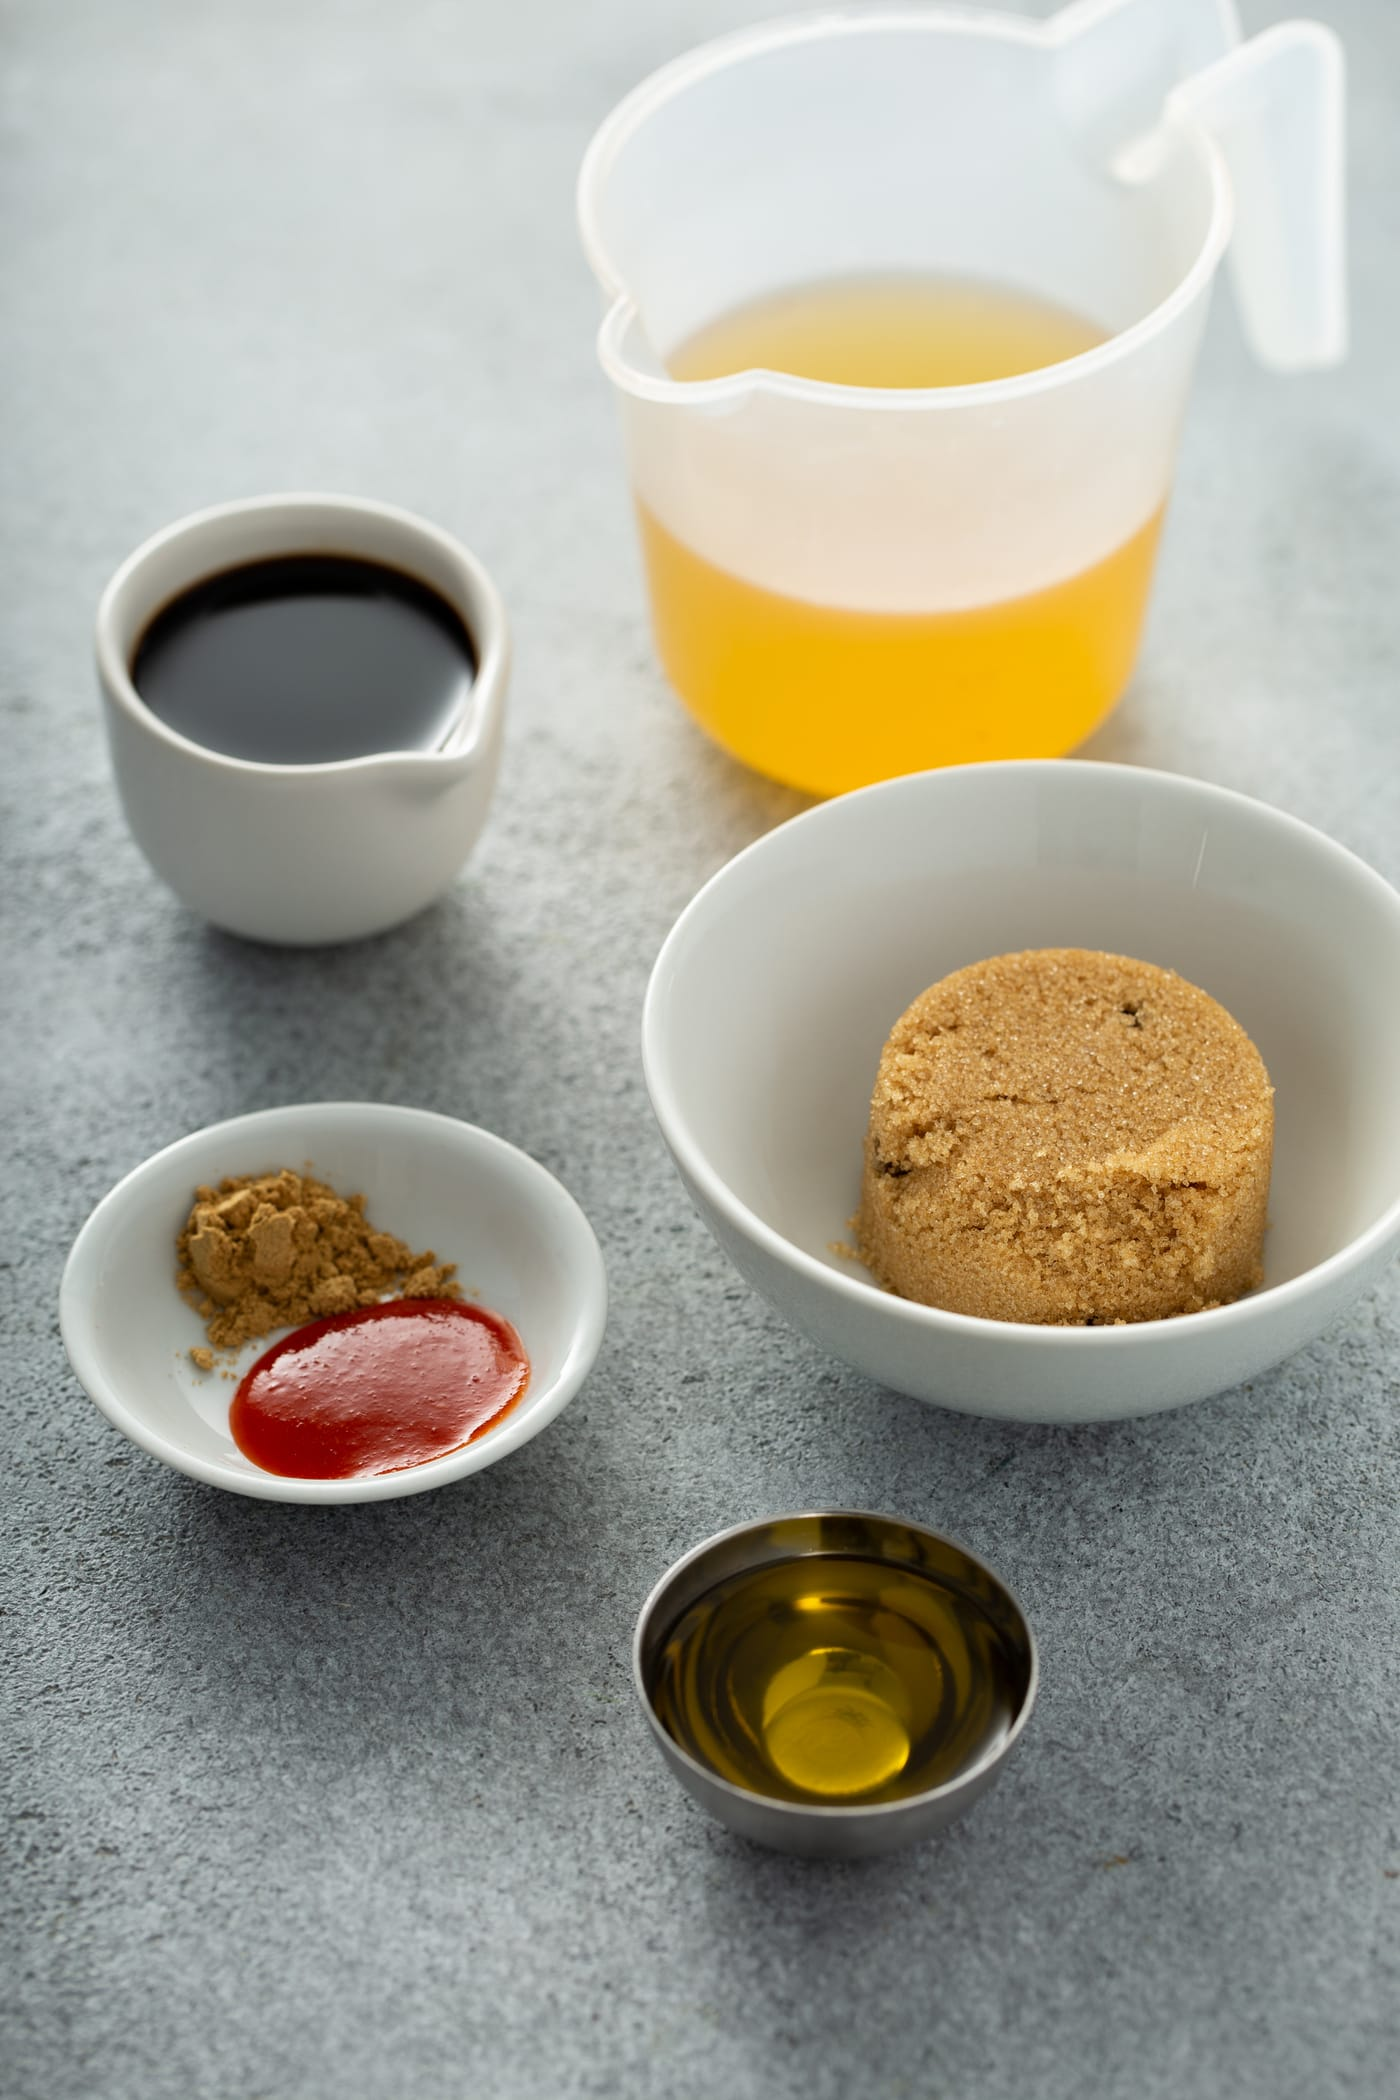 A photo of all the ingredients in separate dishes to make the sauce for beef and broccoli, including beef broth, soy sauce, brown sugar, ground ginger, sriracha sauce, and sesame oil.